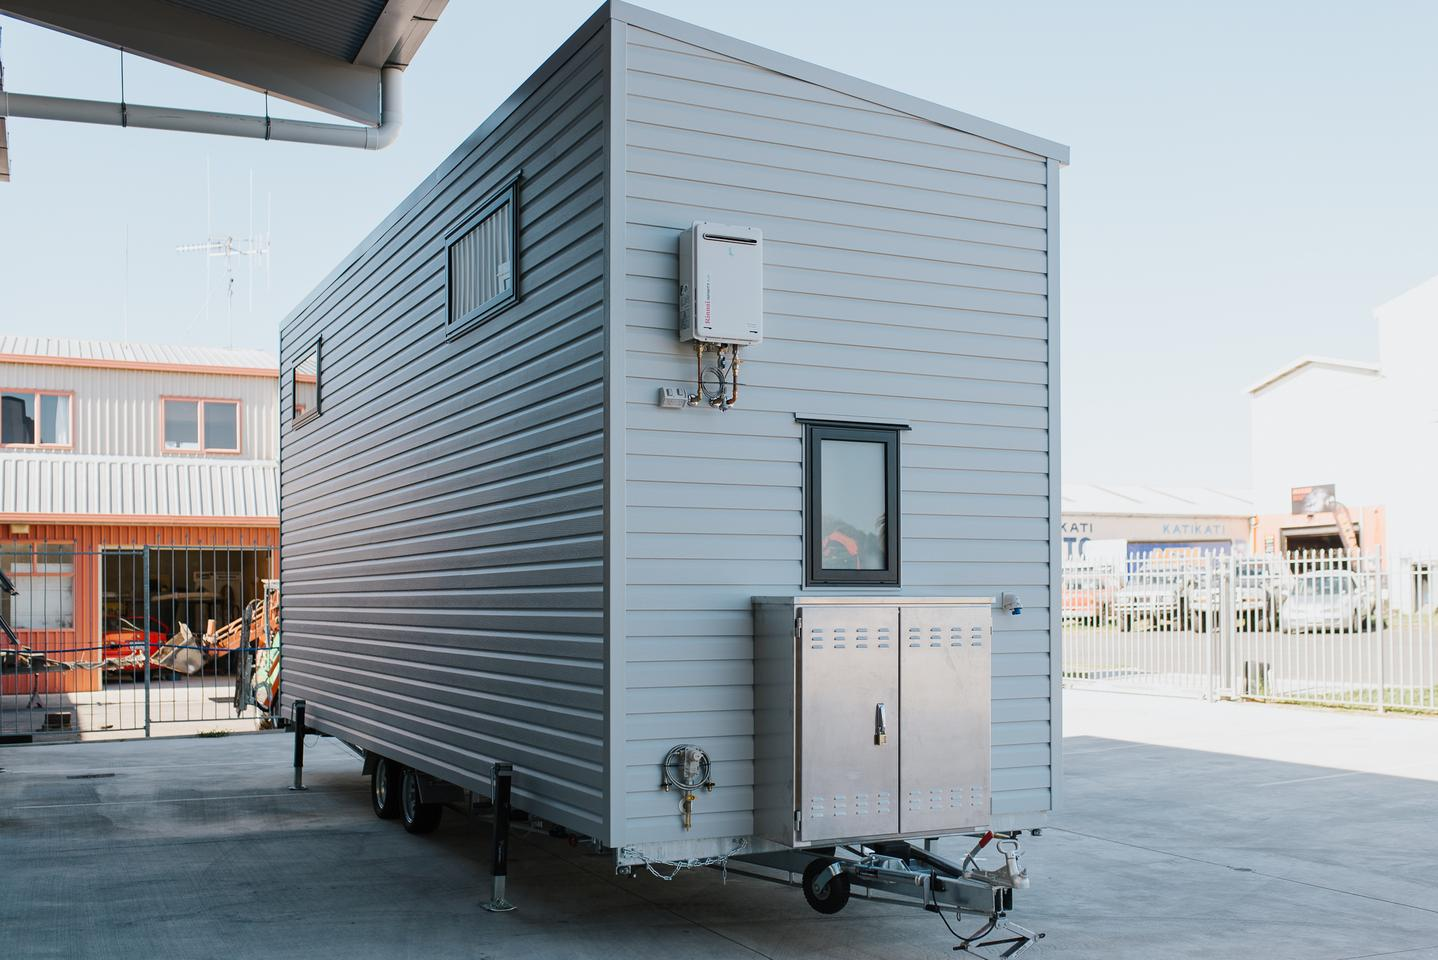 The Dreamweaver Tiny House has a storage box on its exterior that contains the inverter and batteries for the solar panel setup